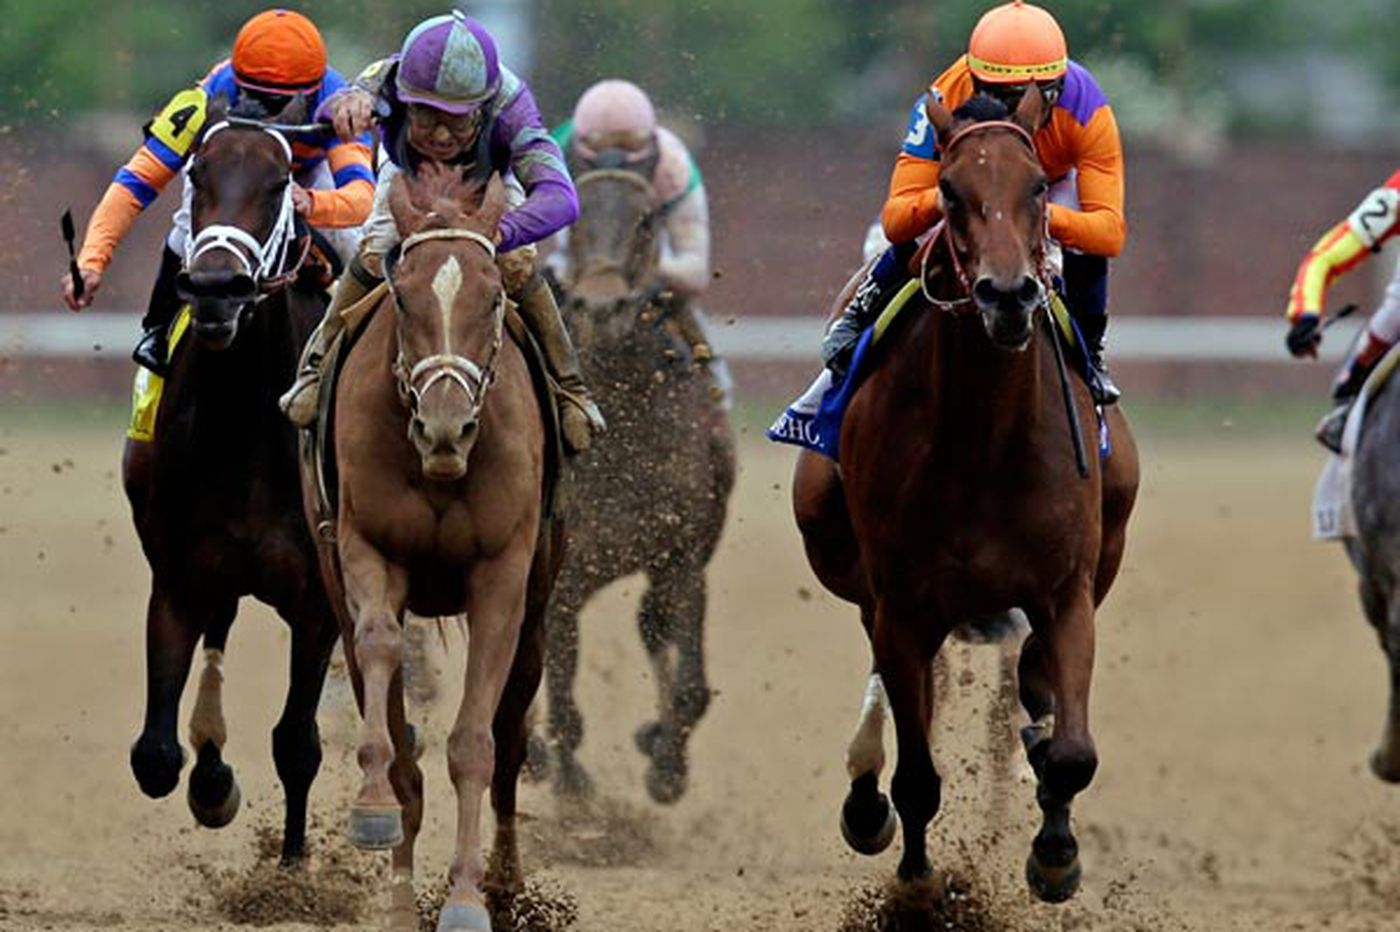 Wide-open race expected in 139th Kentucky Derby